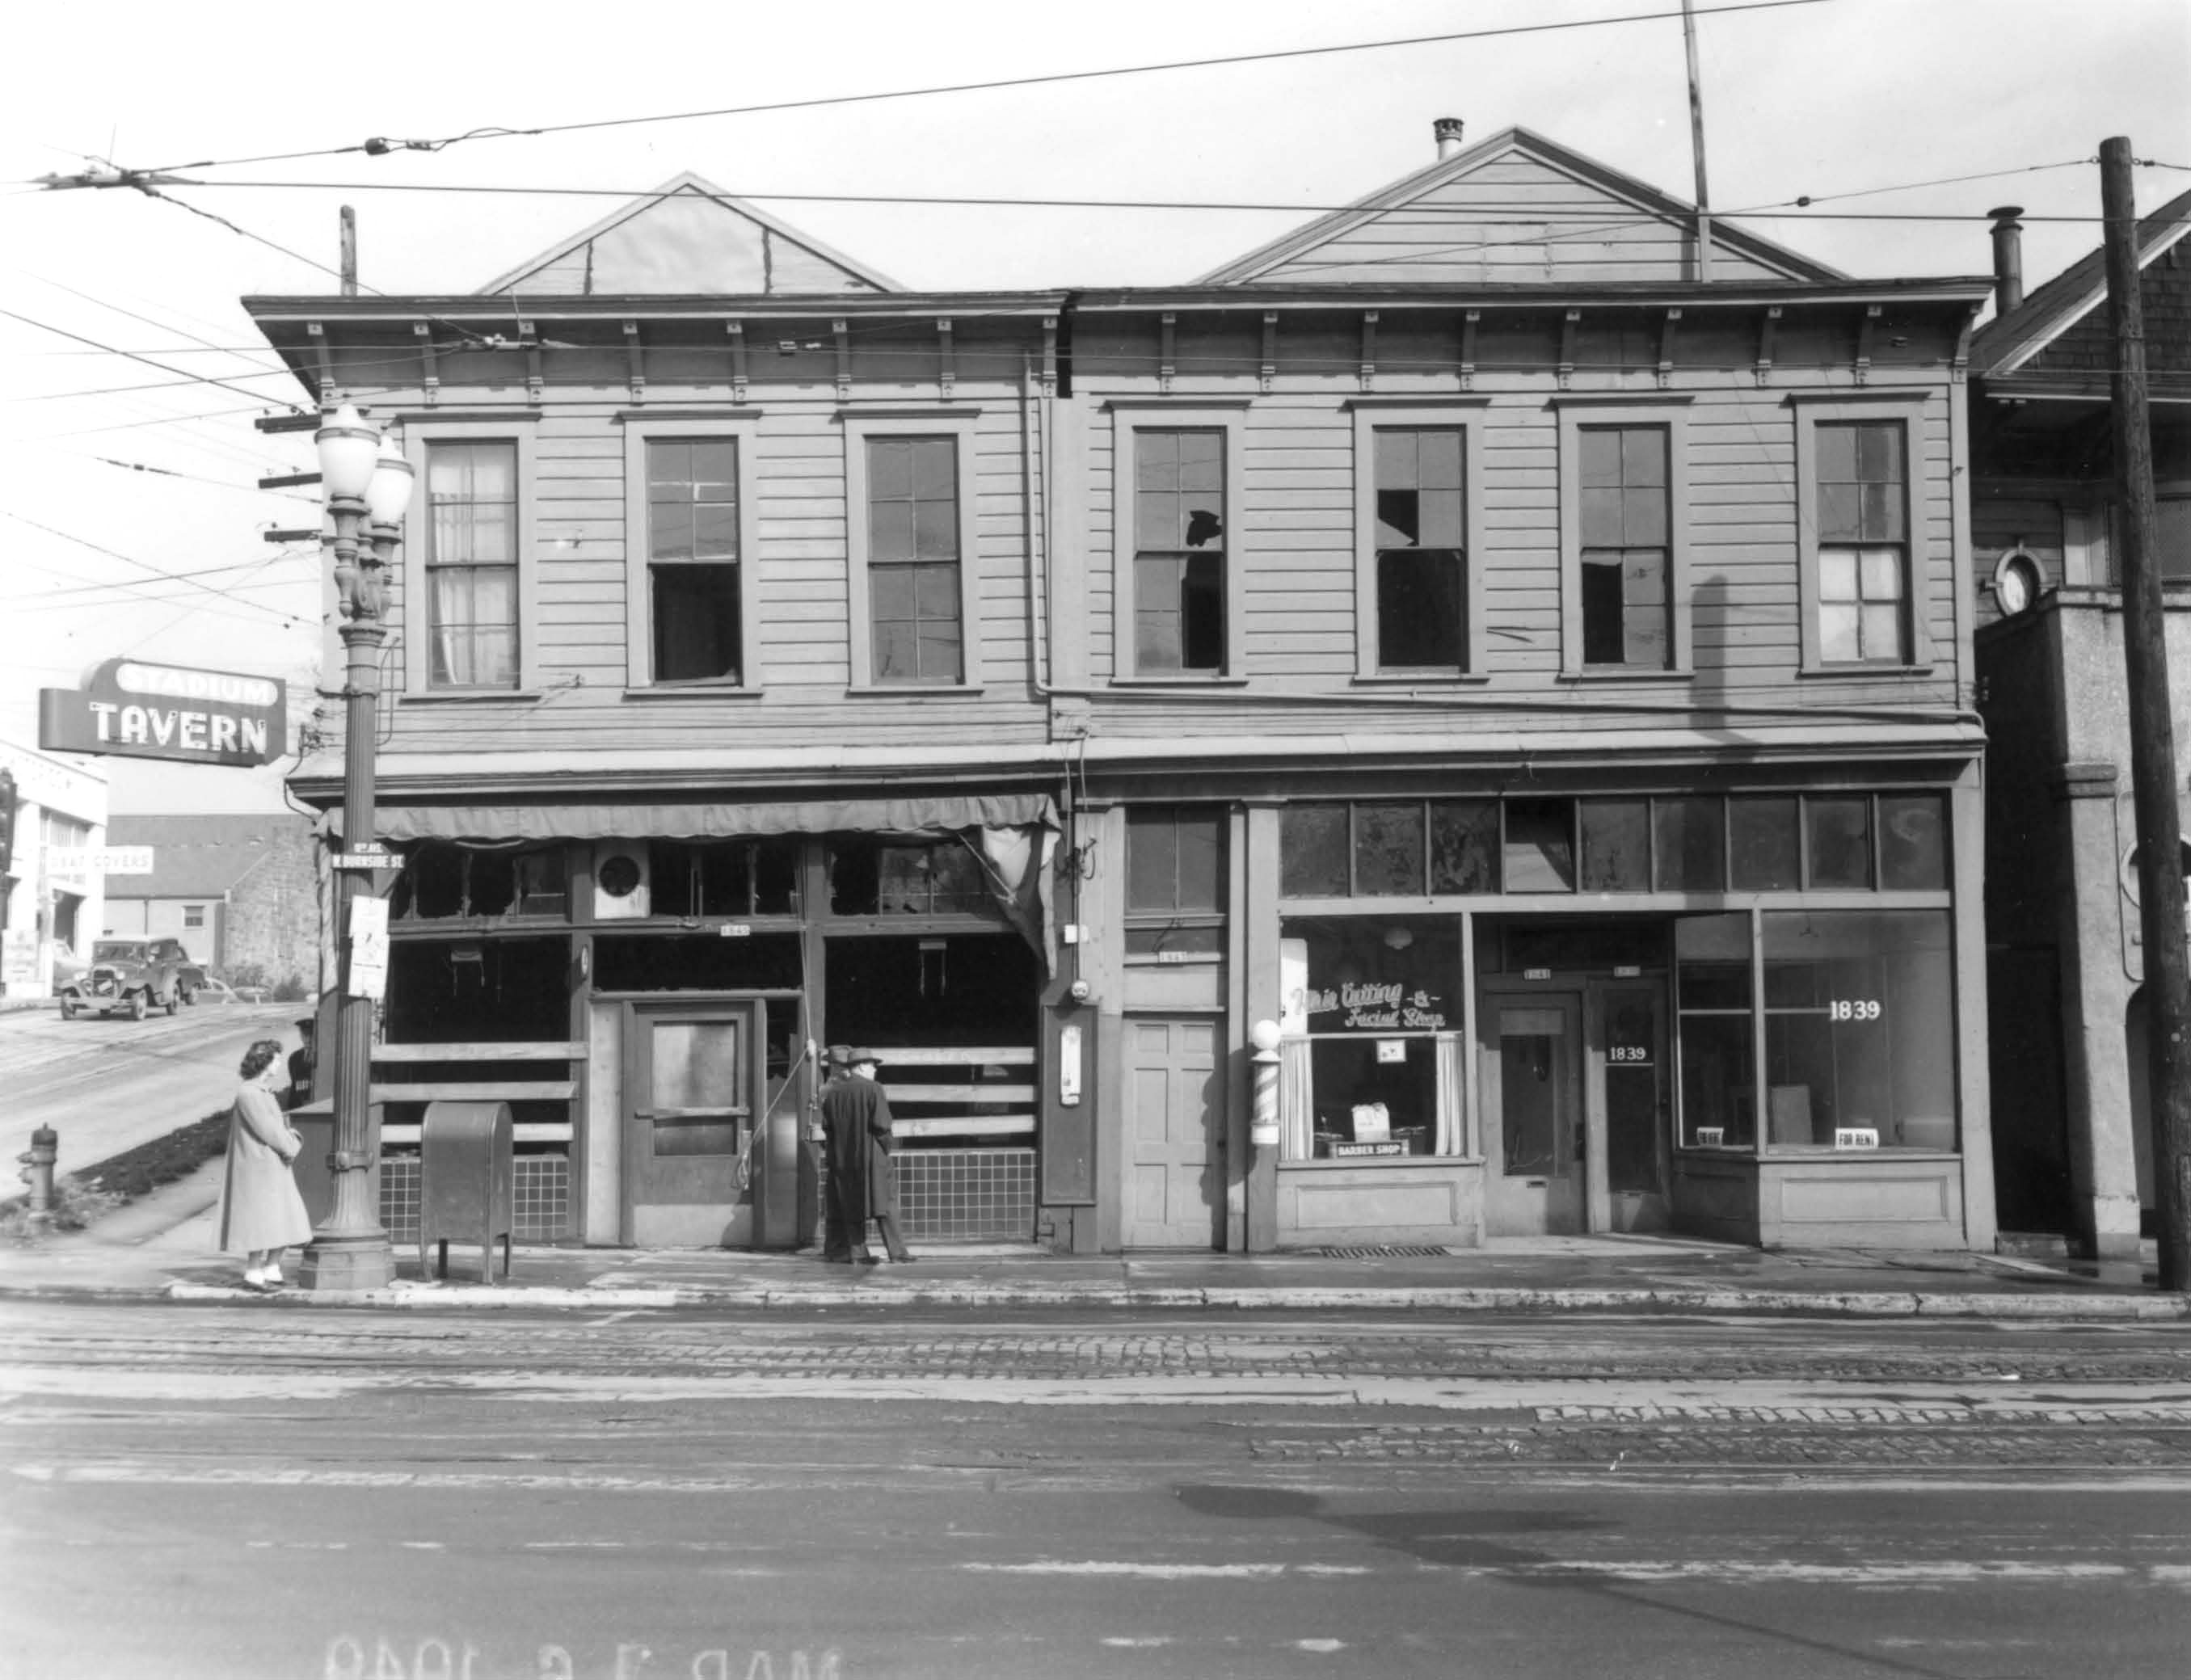 a2005-005-29-6-stadium-tavern-nw-19th-burnside-1949